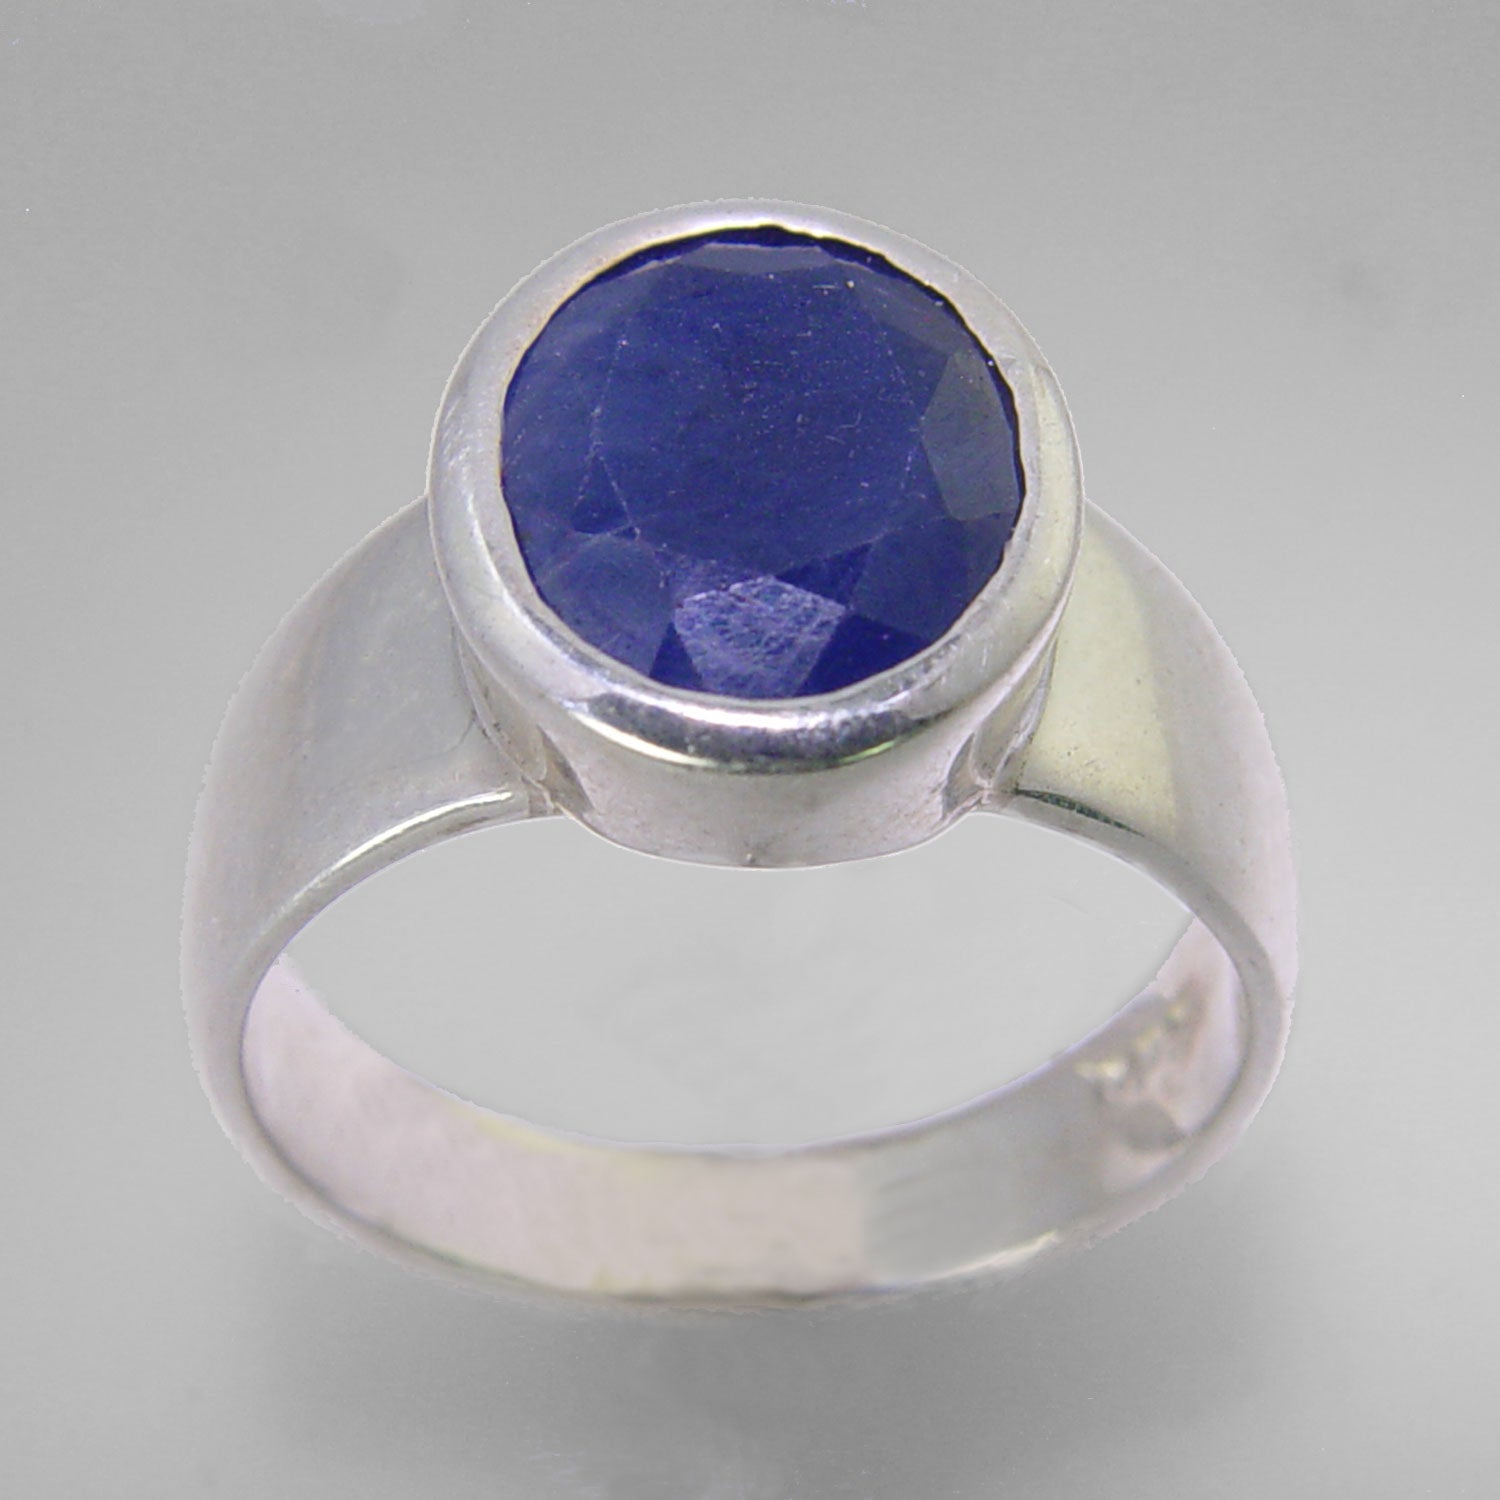 Blue Sapphire 4 ct Faceted Oval Sterling Silver Ring, Size 8